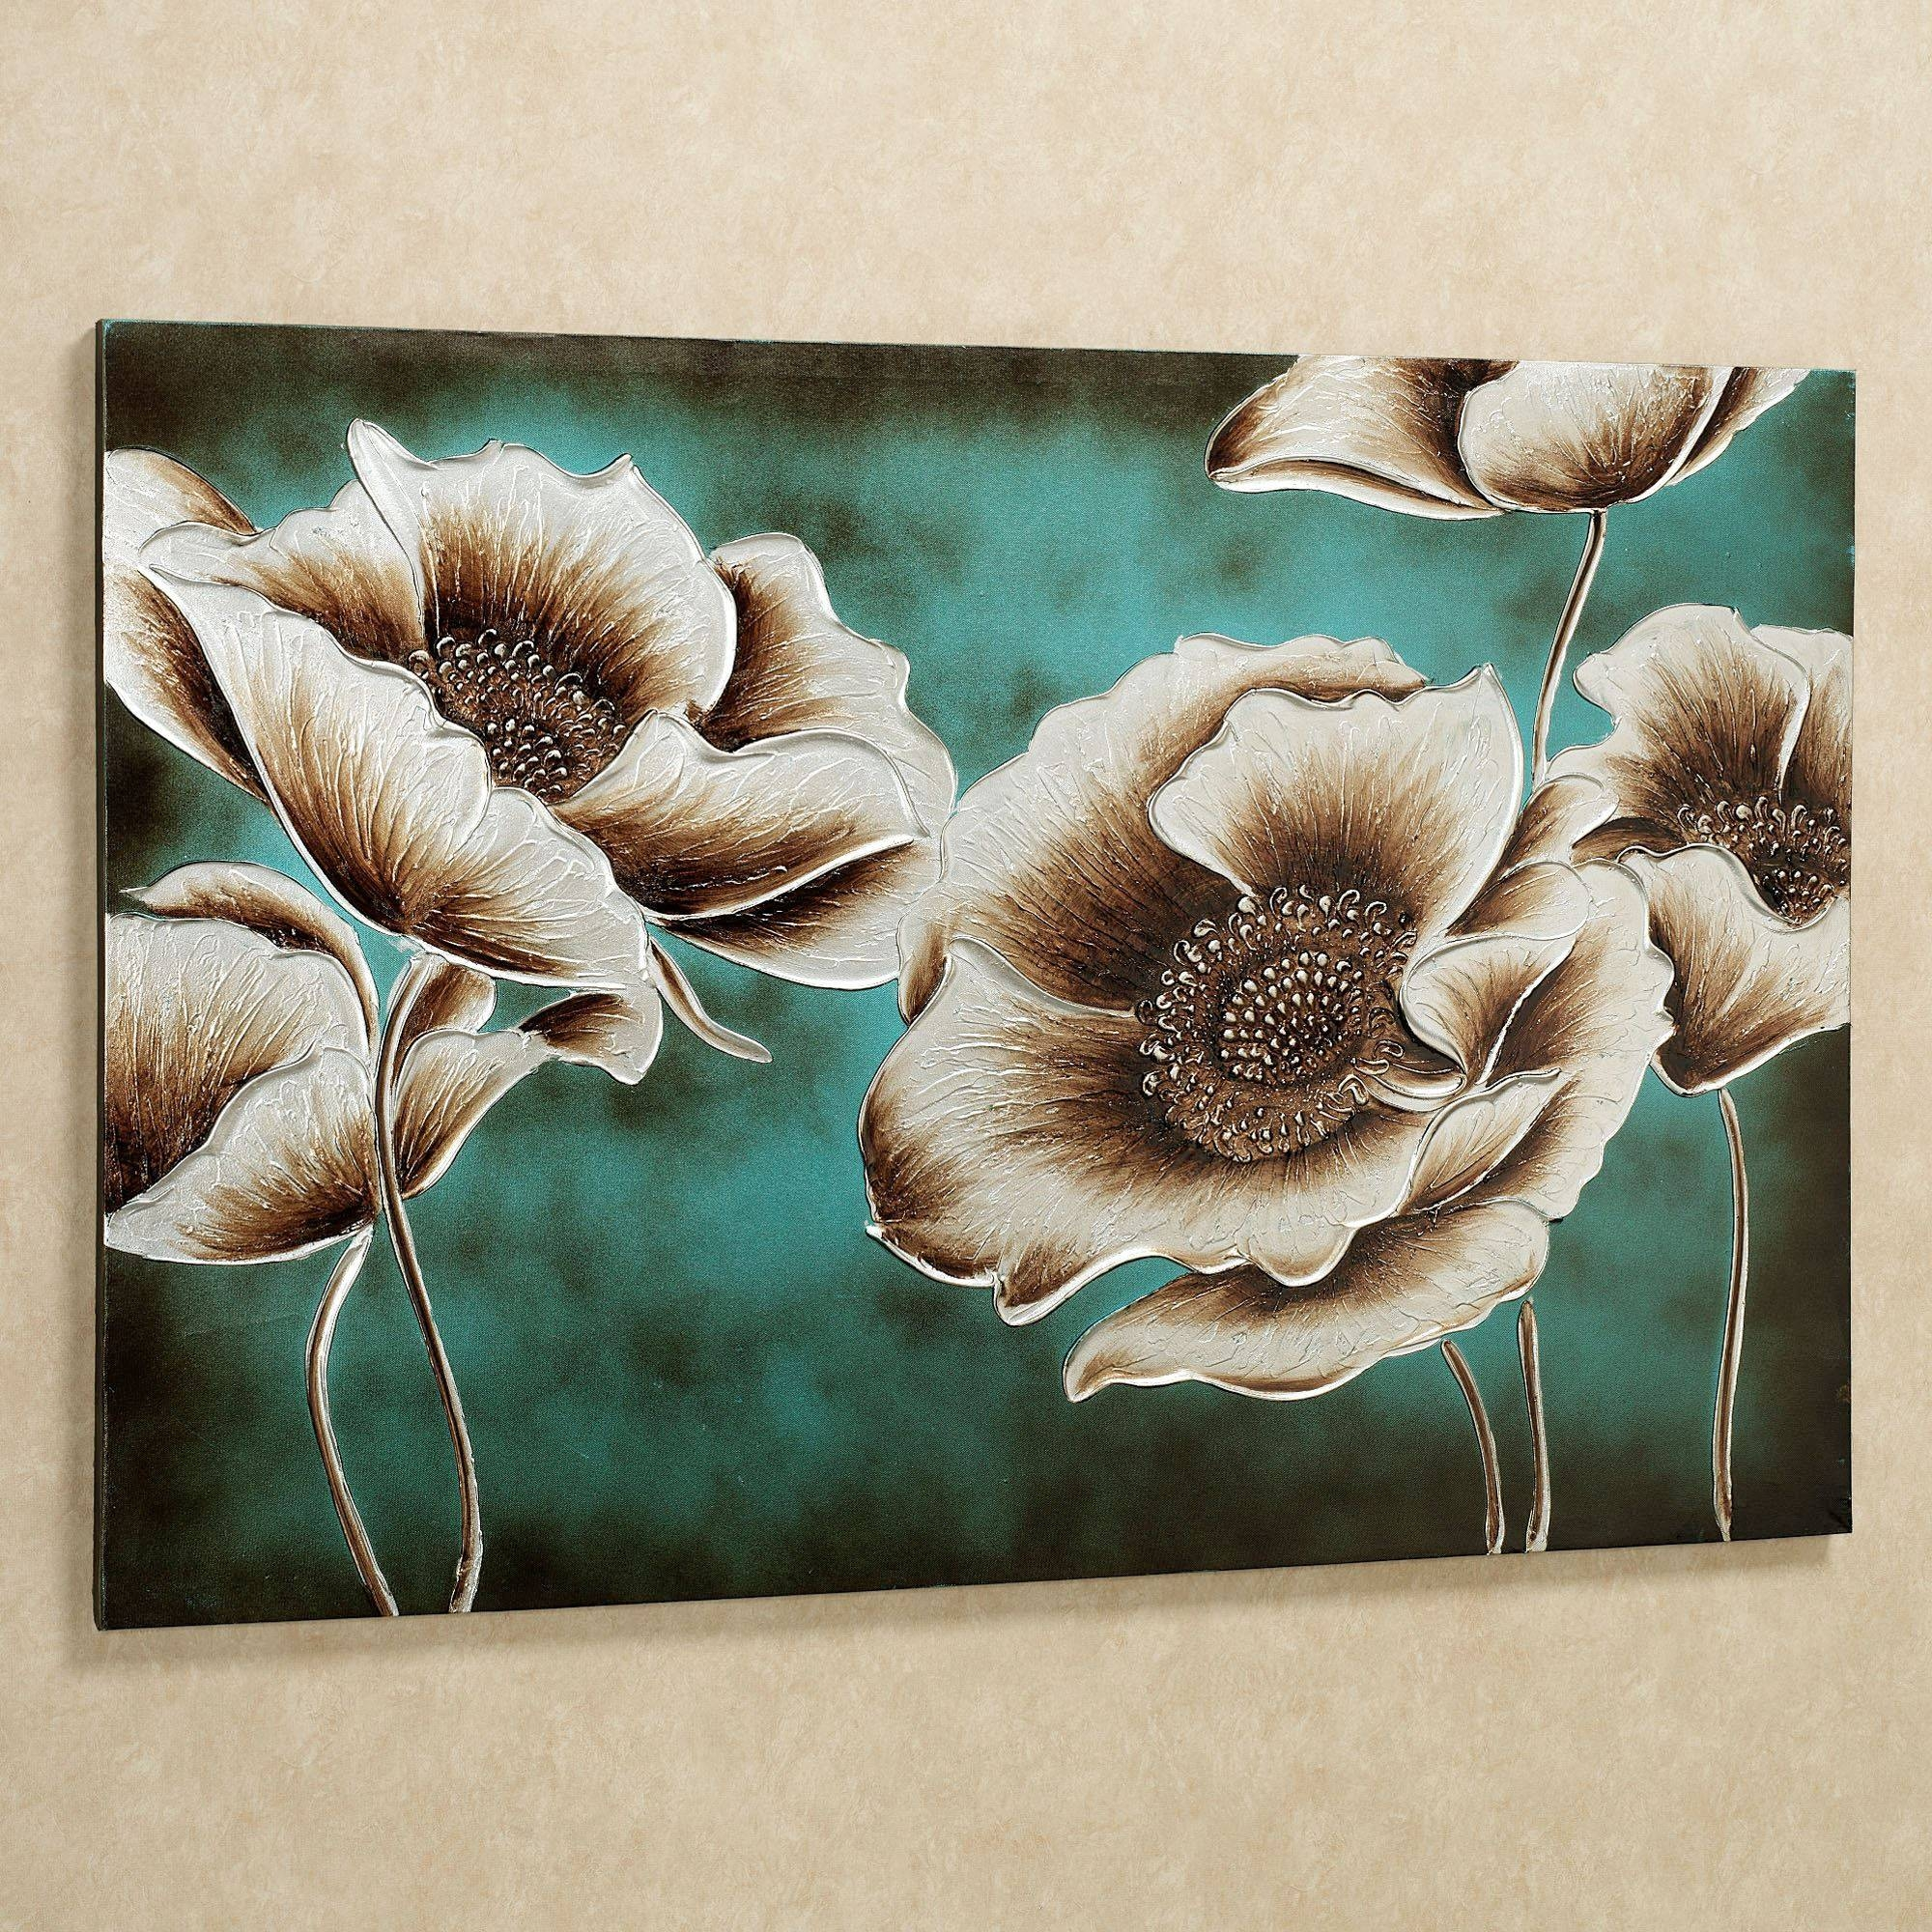 Cool Design Ideas Piece Canvas Wall Artblack Teal Flower Canvas Pertaining To Most Current Teal Flower Canvas Wall Art (View 11 of 20)